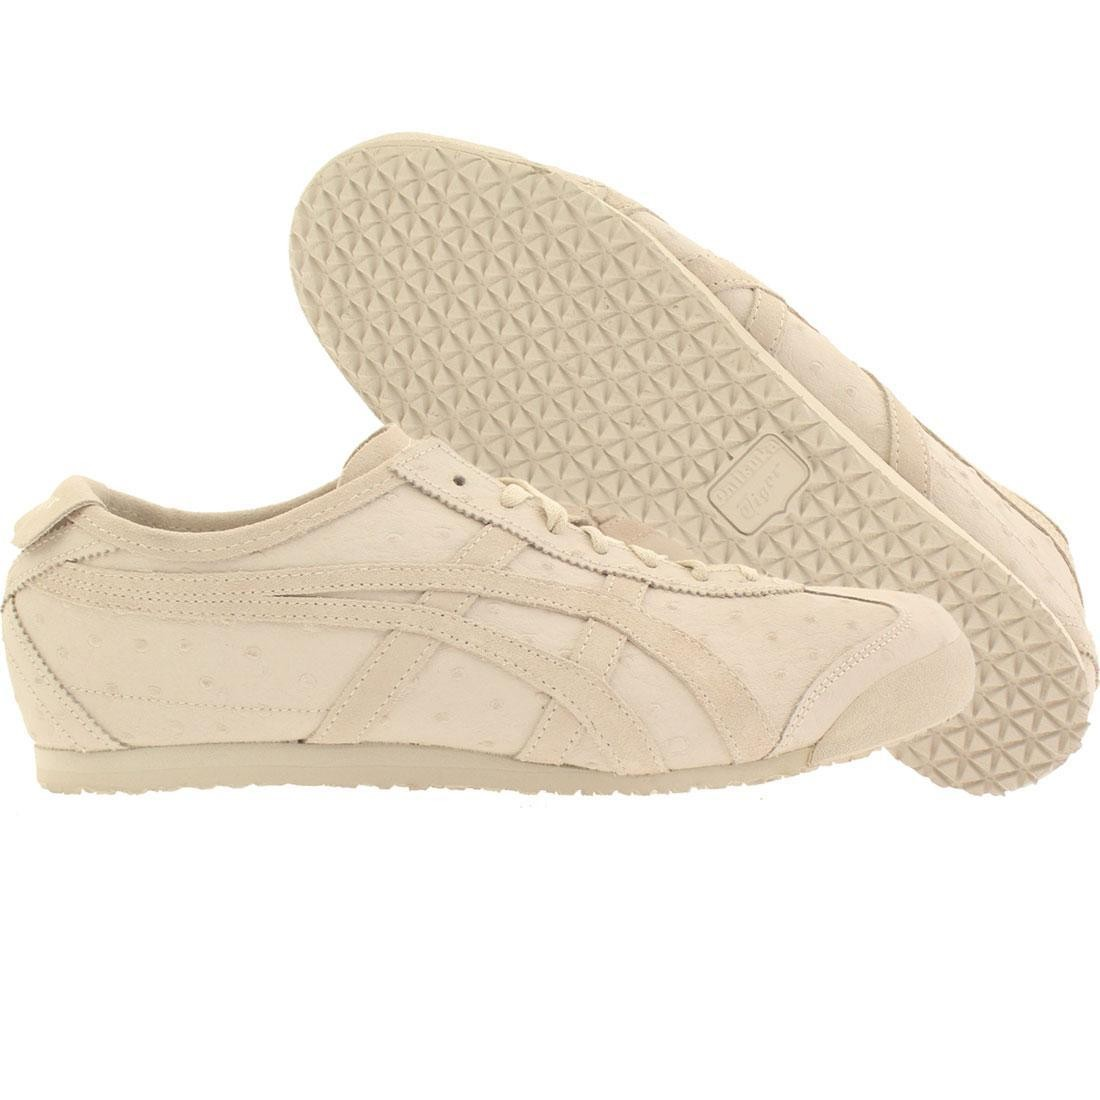 best website 2d4c2 0d4f2 onitsuka tiger mexico 66 off white